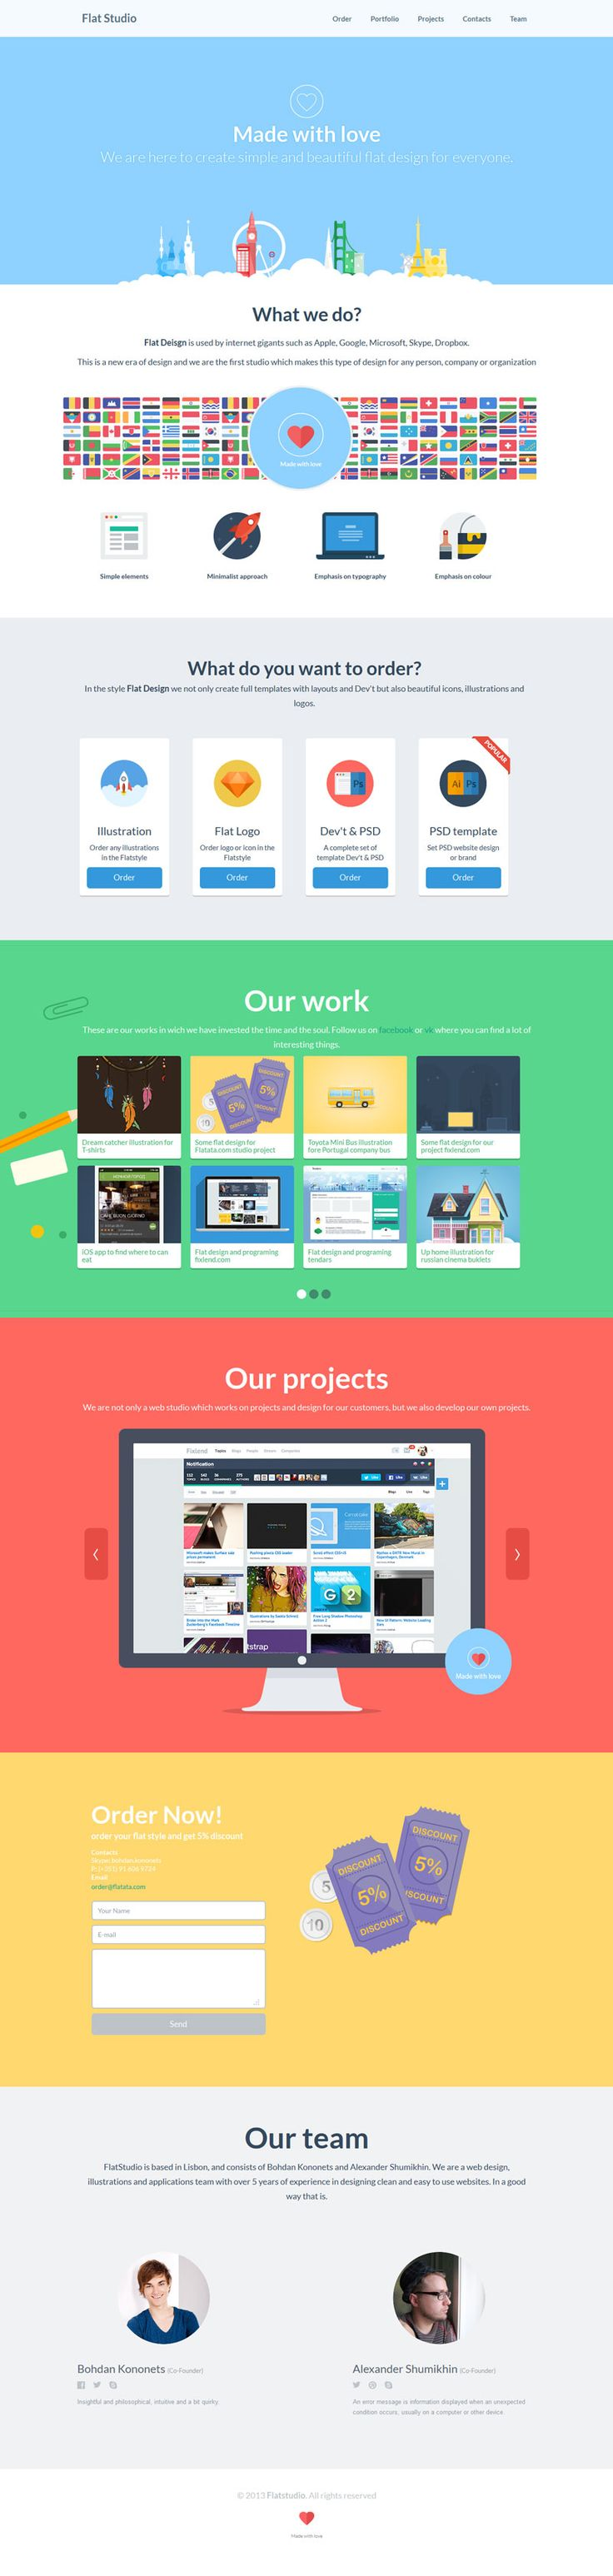 Flat-Studio, flat web design, example